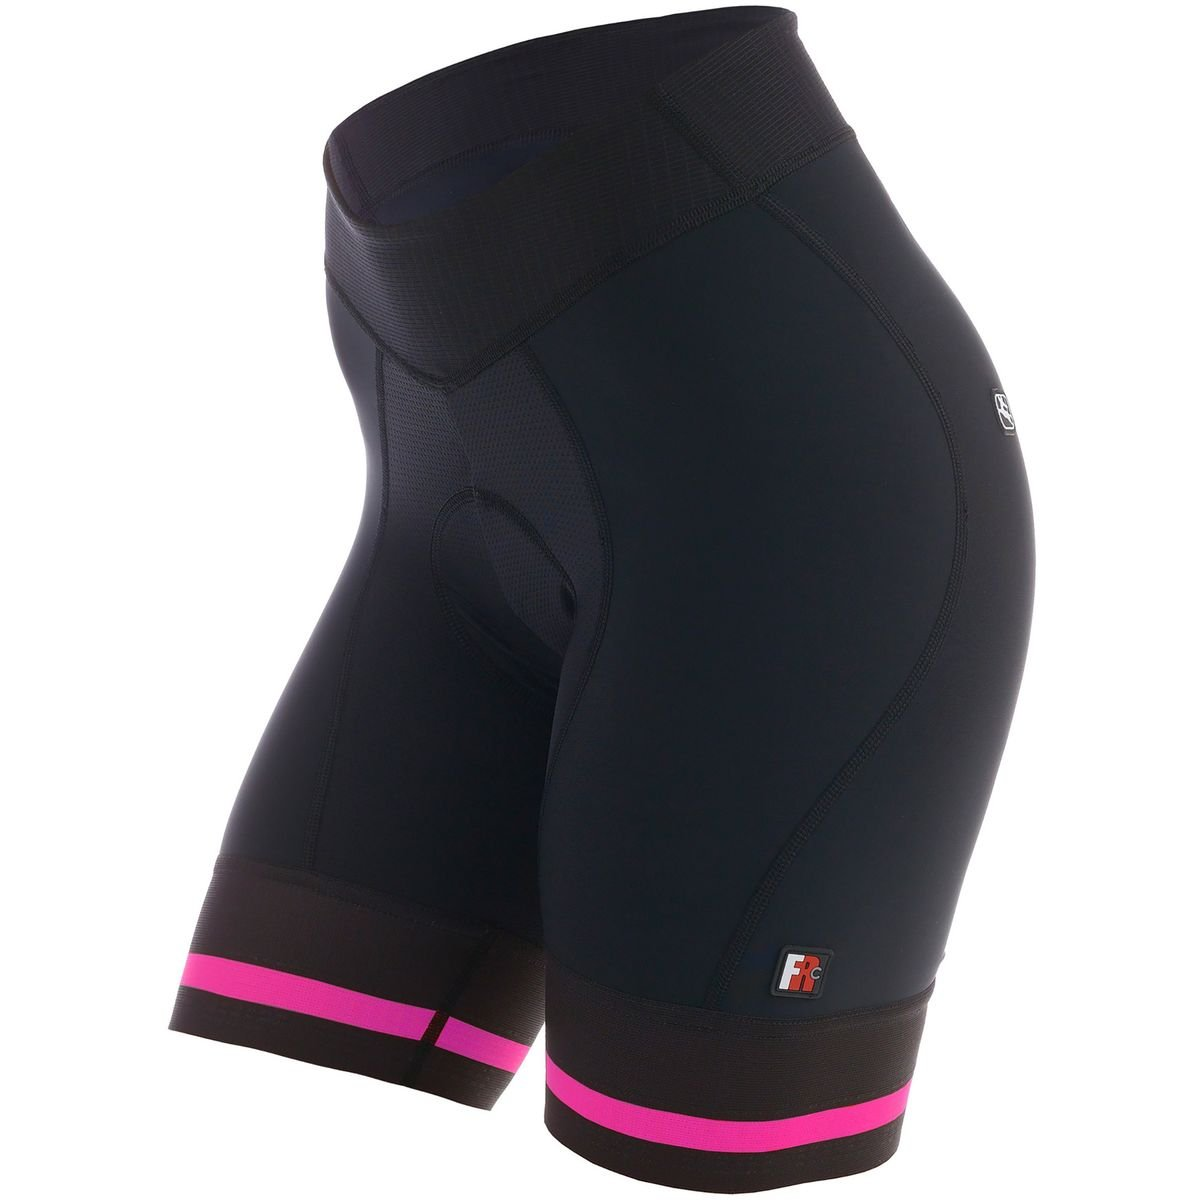 Giordana FormaRed Carbon Short with Cirro Insert - Women's Black/Pink, M